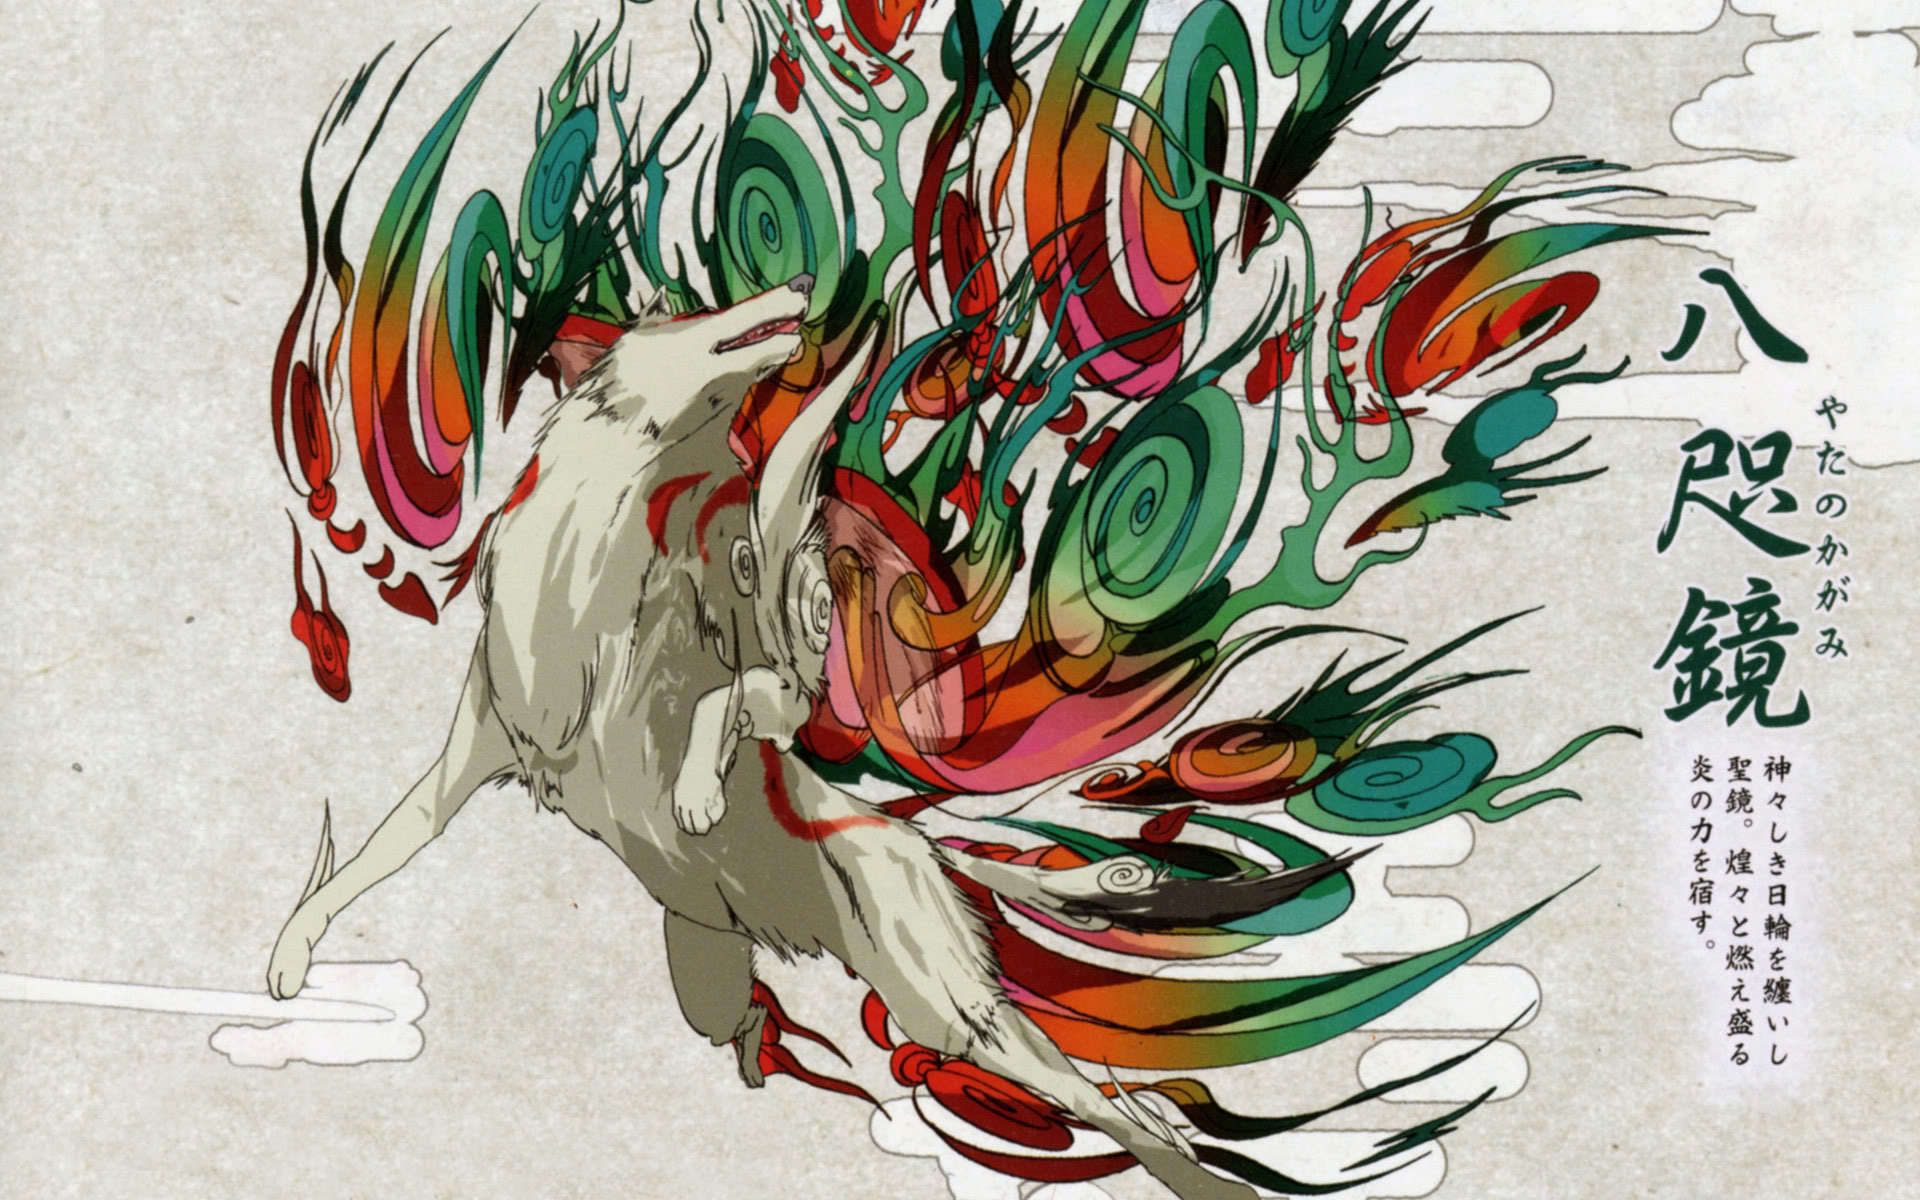 Amaterasu From Okami Still One Of My Favourite Games Five Years On